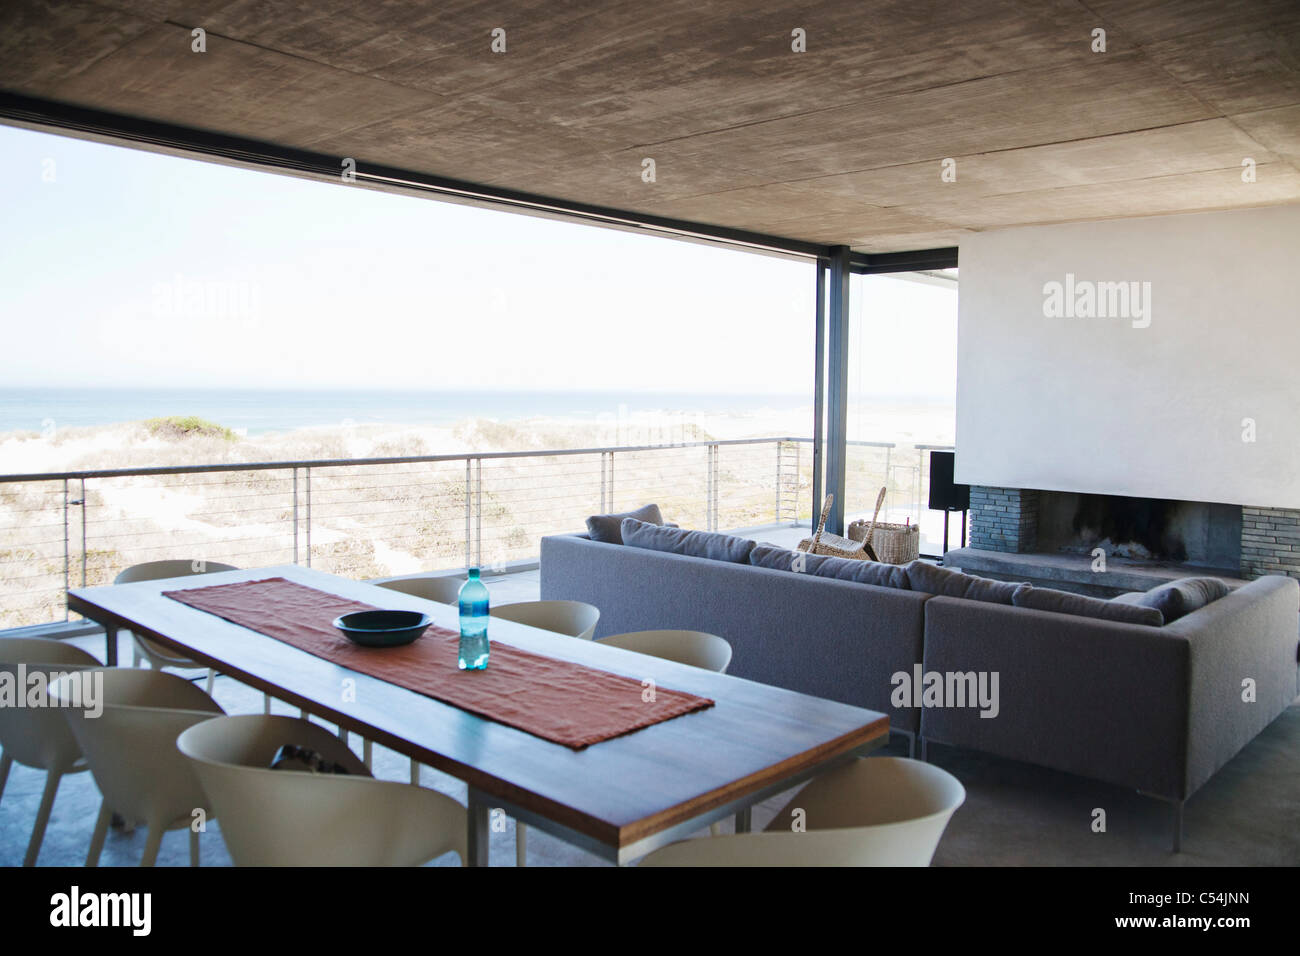 Home interiors with beach in the background - Stock Image